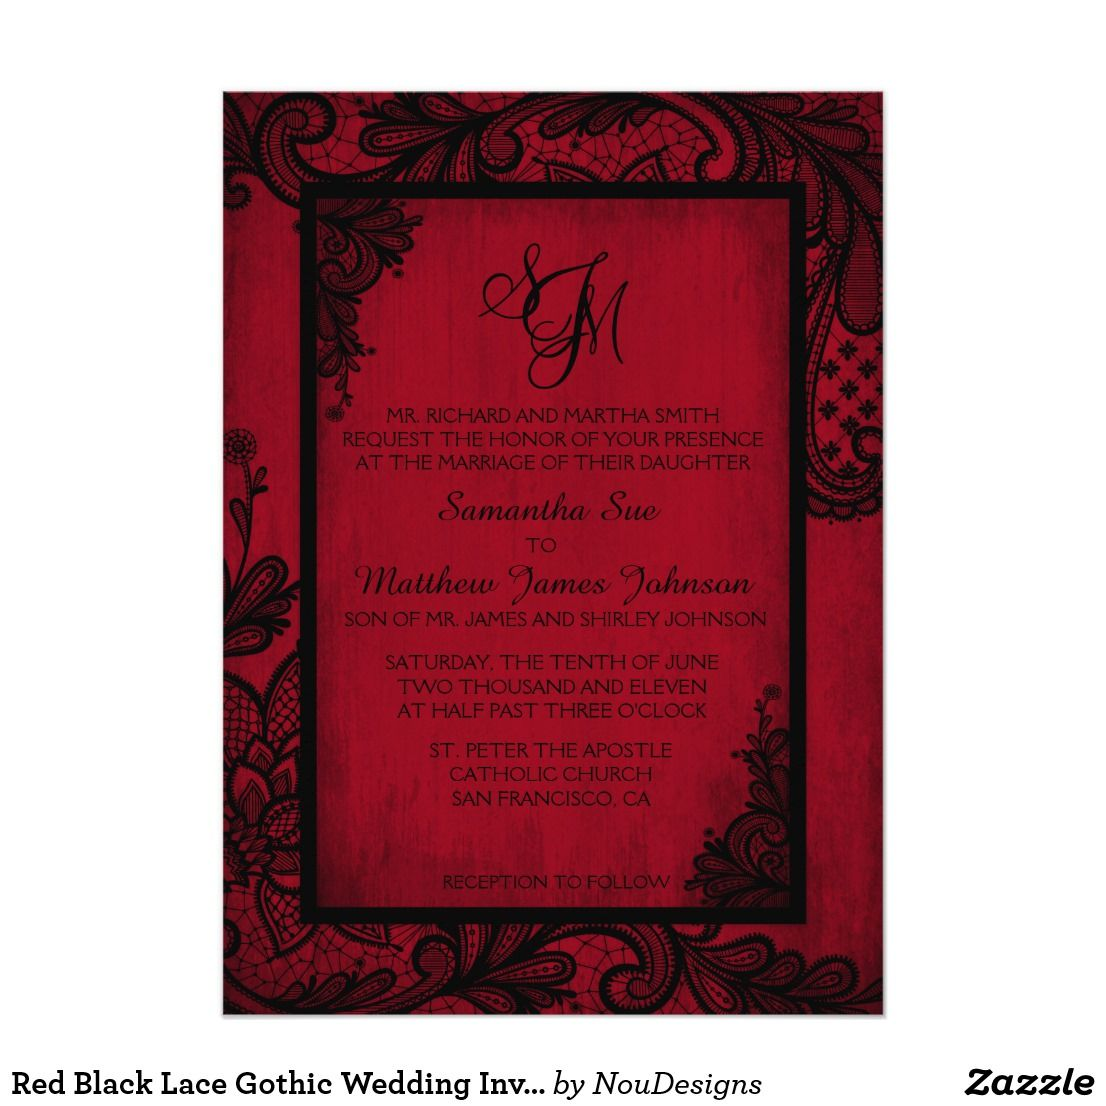 Red Black Lace Gothic Wedding Invitation Card | Budget Lace Wedding ...